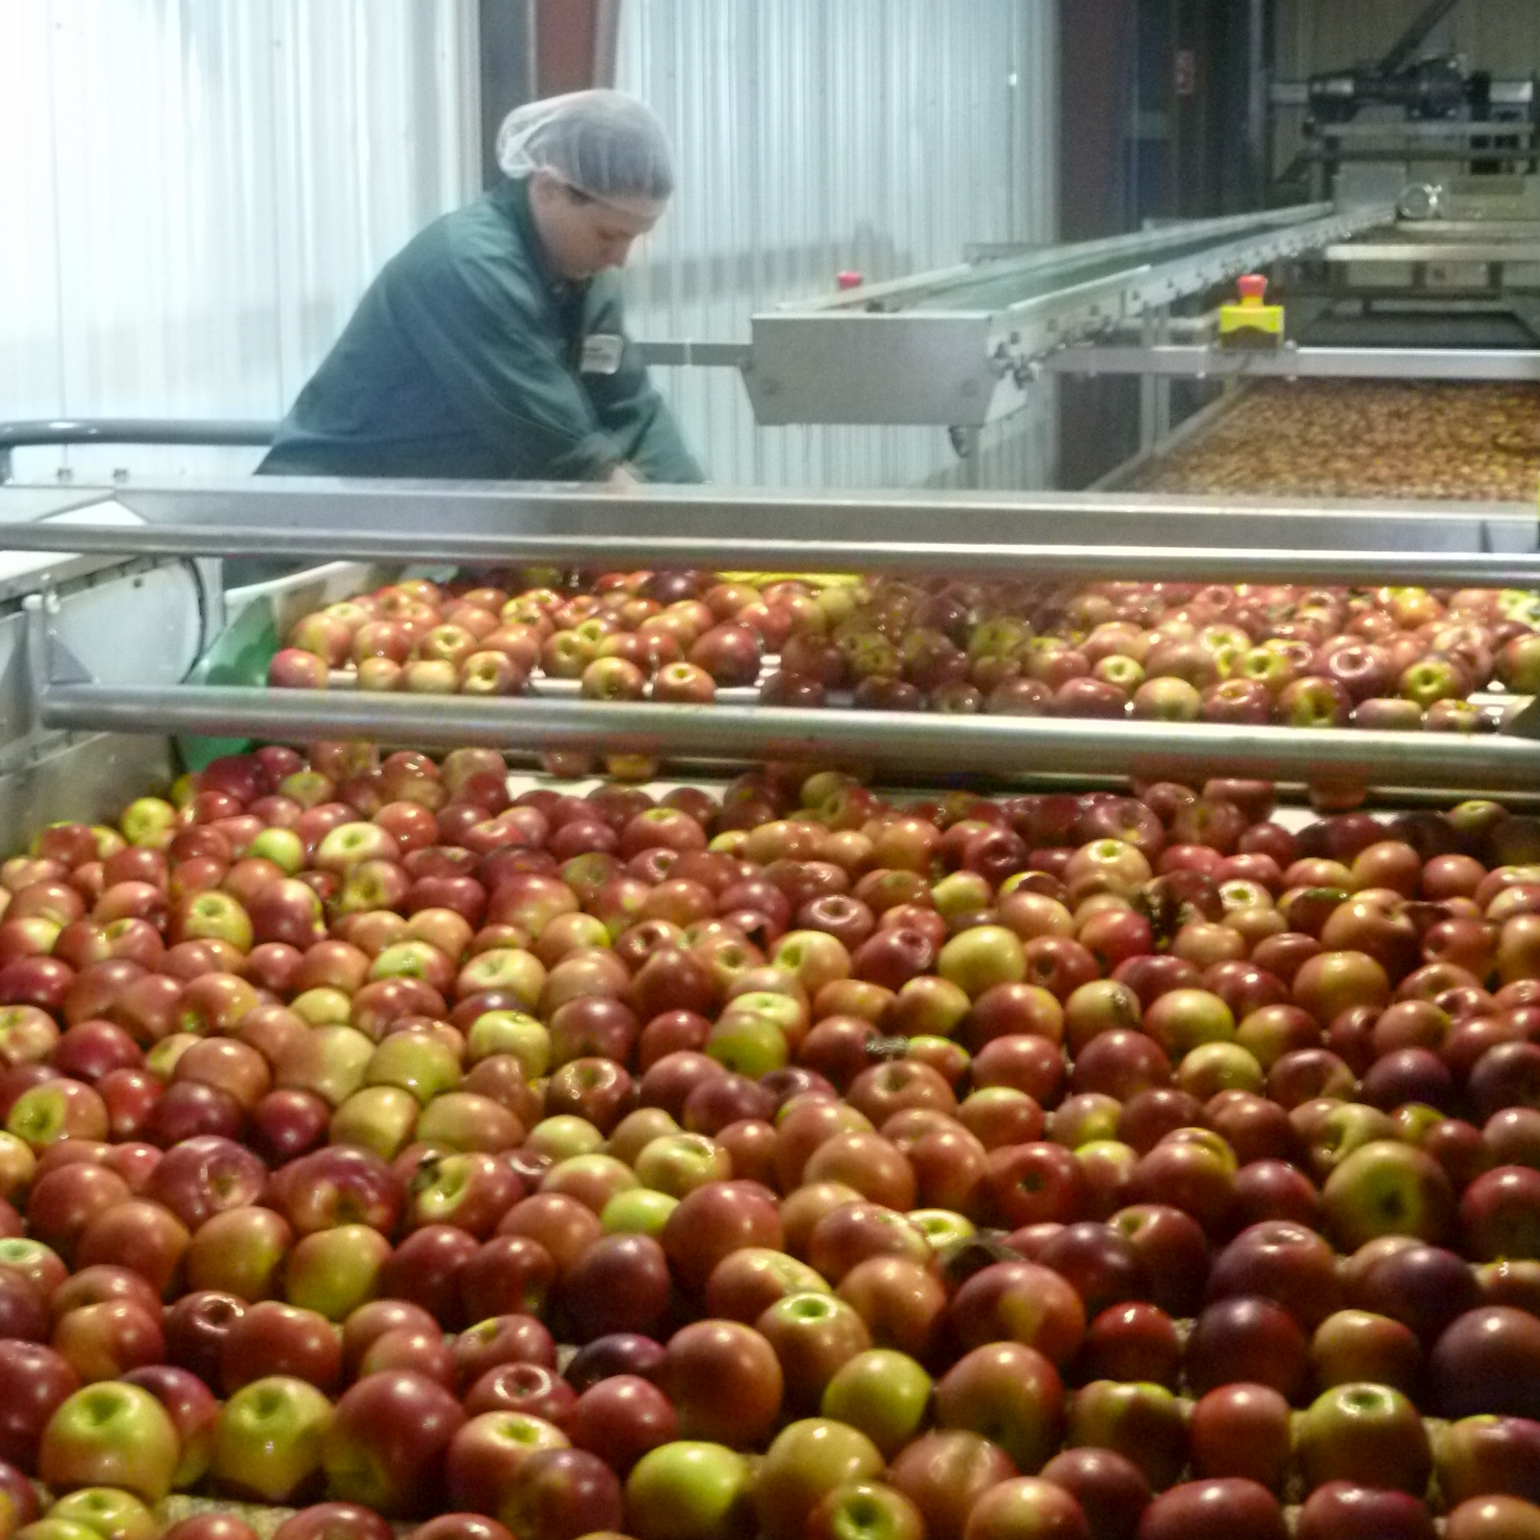 A worker at New York Apple Sales Inc. sorts apples on a conveyor